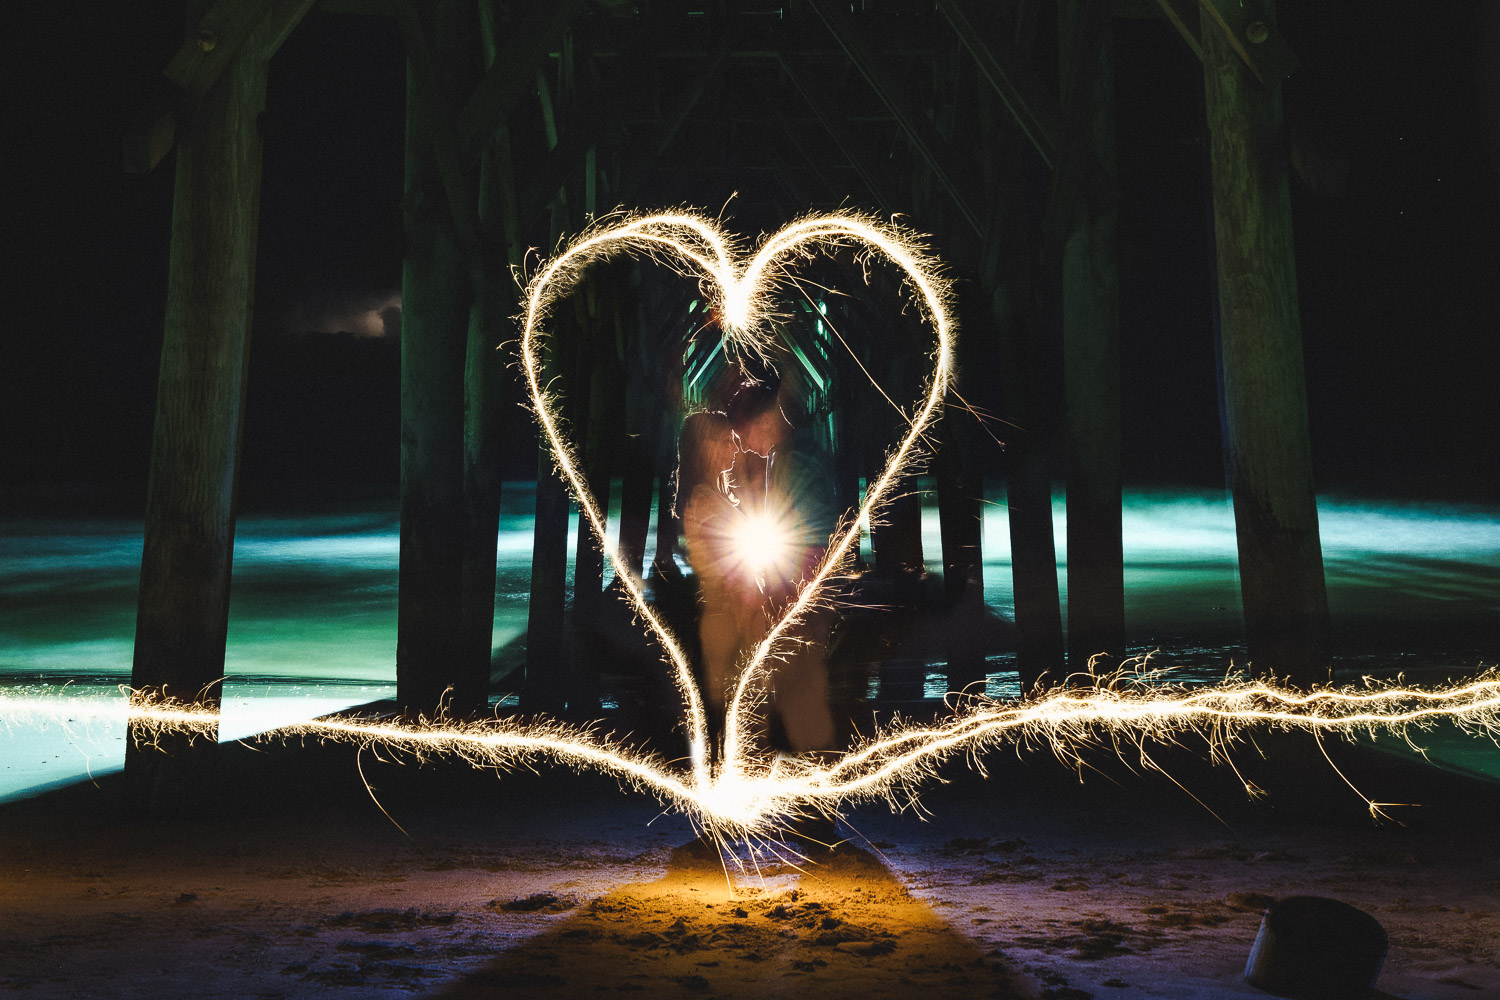 Amazing Light Painting for Couple Beach Photos by South Florida Photographer Humberto Garcia on Sony A7II and Sony 35mm 1.4